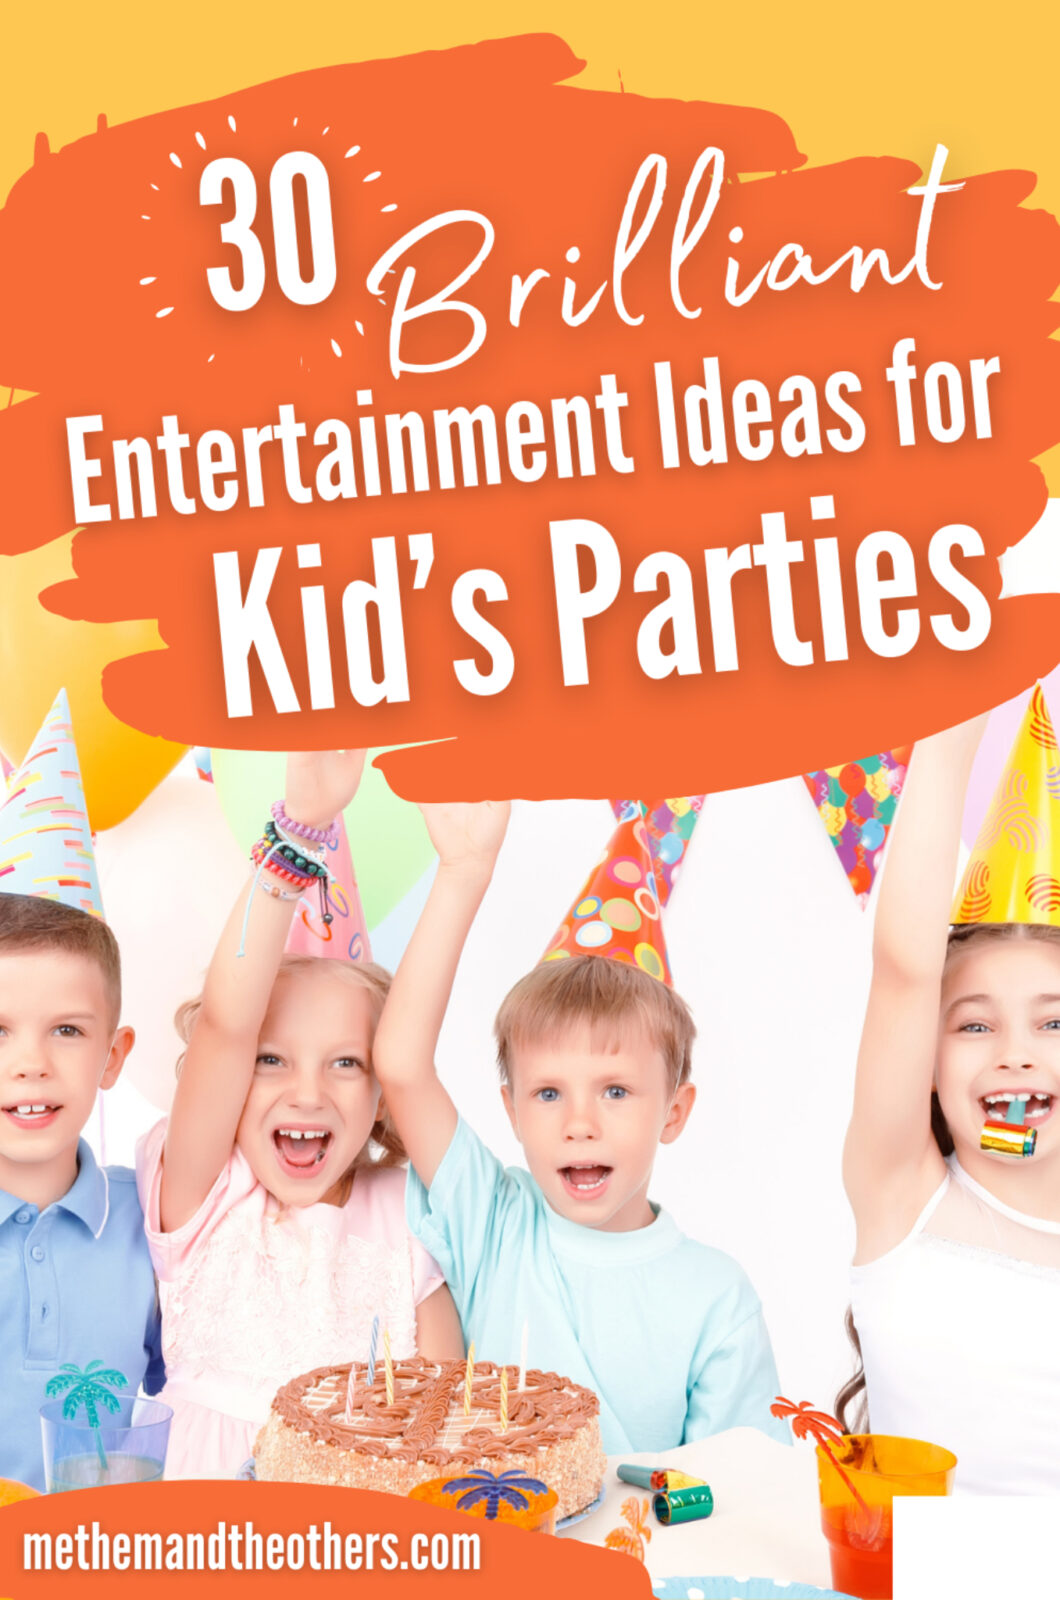 """Children at a birthday party, text reads """"30 Brilliant entertainment ideas for kid's parties"""""""